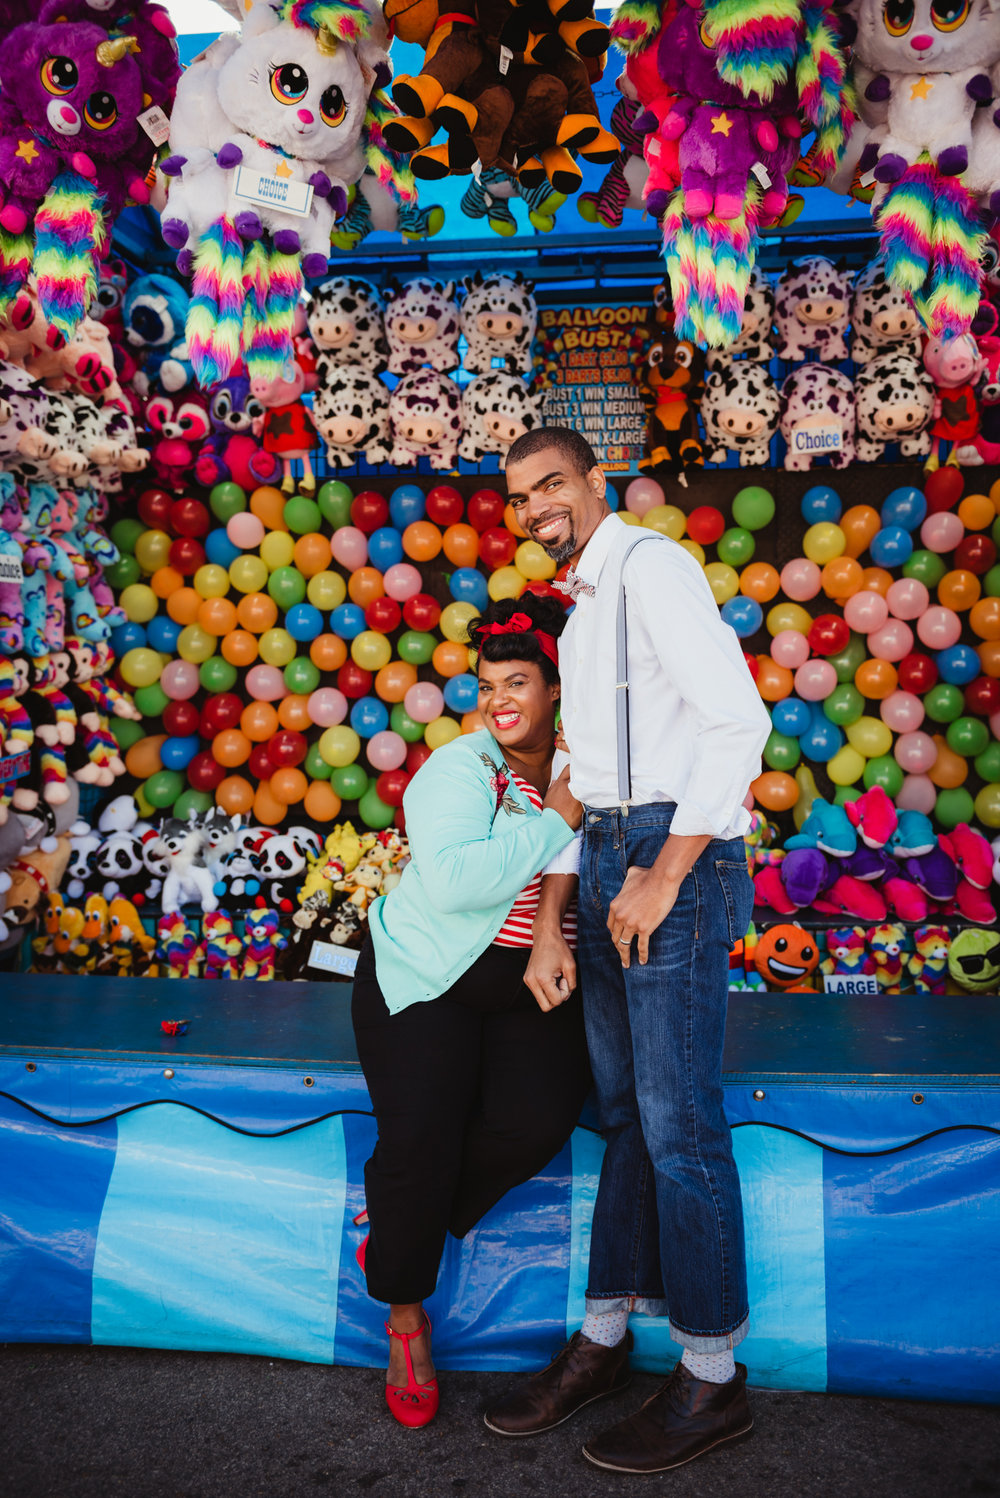 five-years-together-at-the-NC-State-fair.jpg